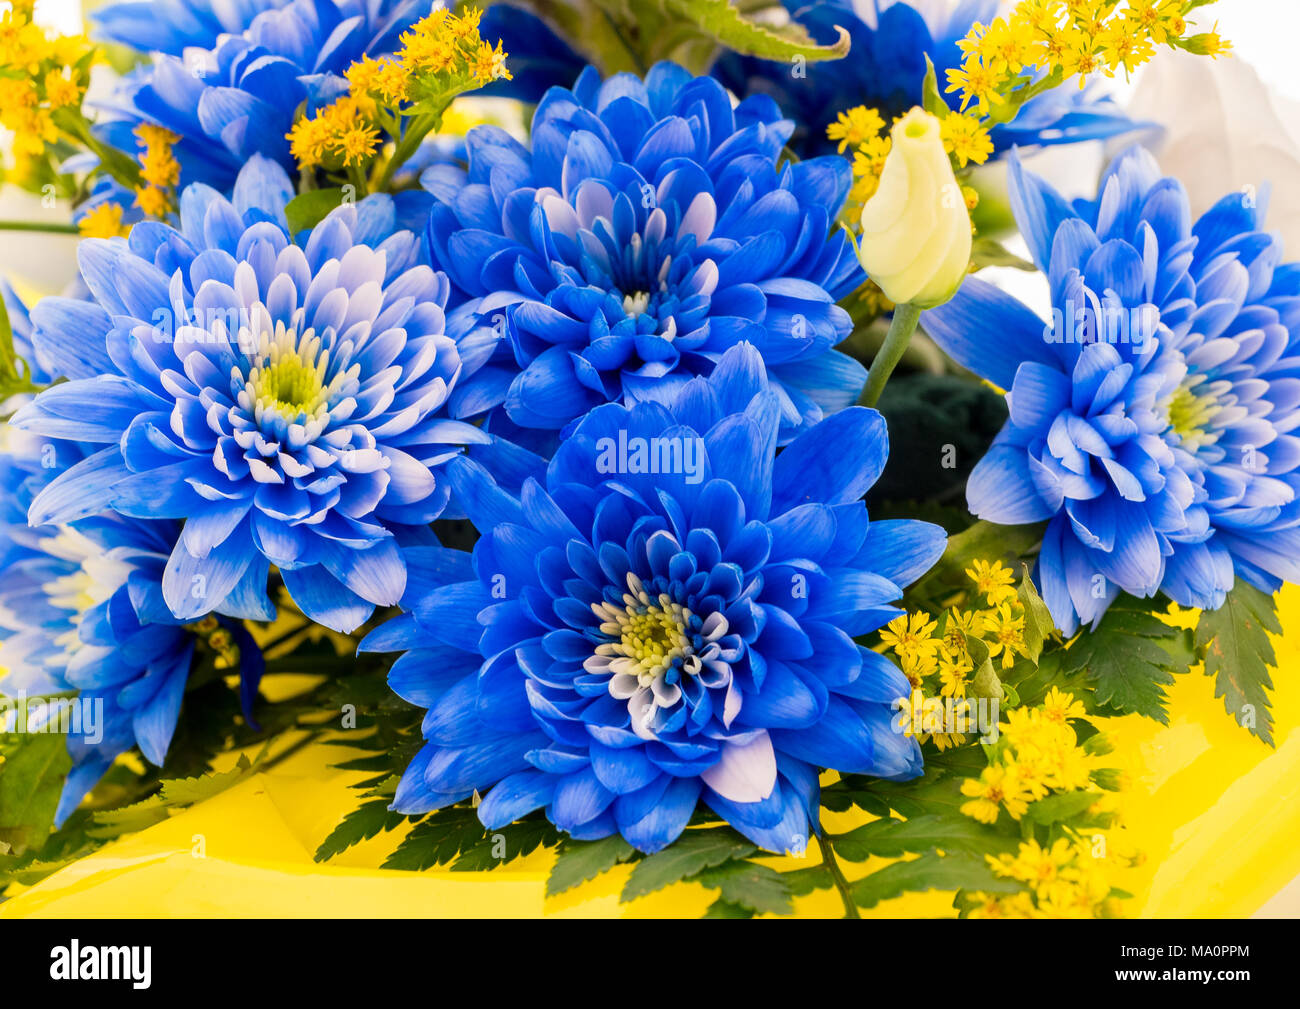 Blue Aster Flowers And Other Species In A Floral Bouquet Stock Photo